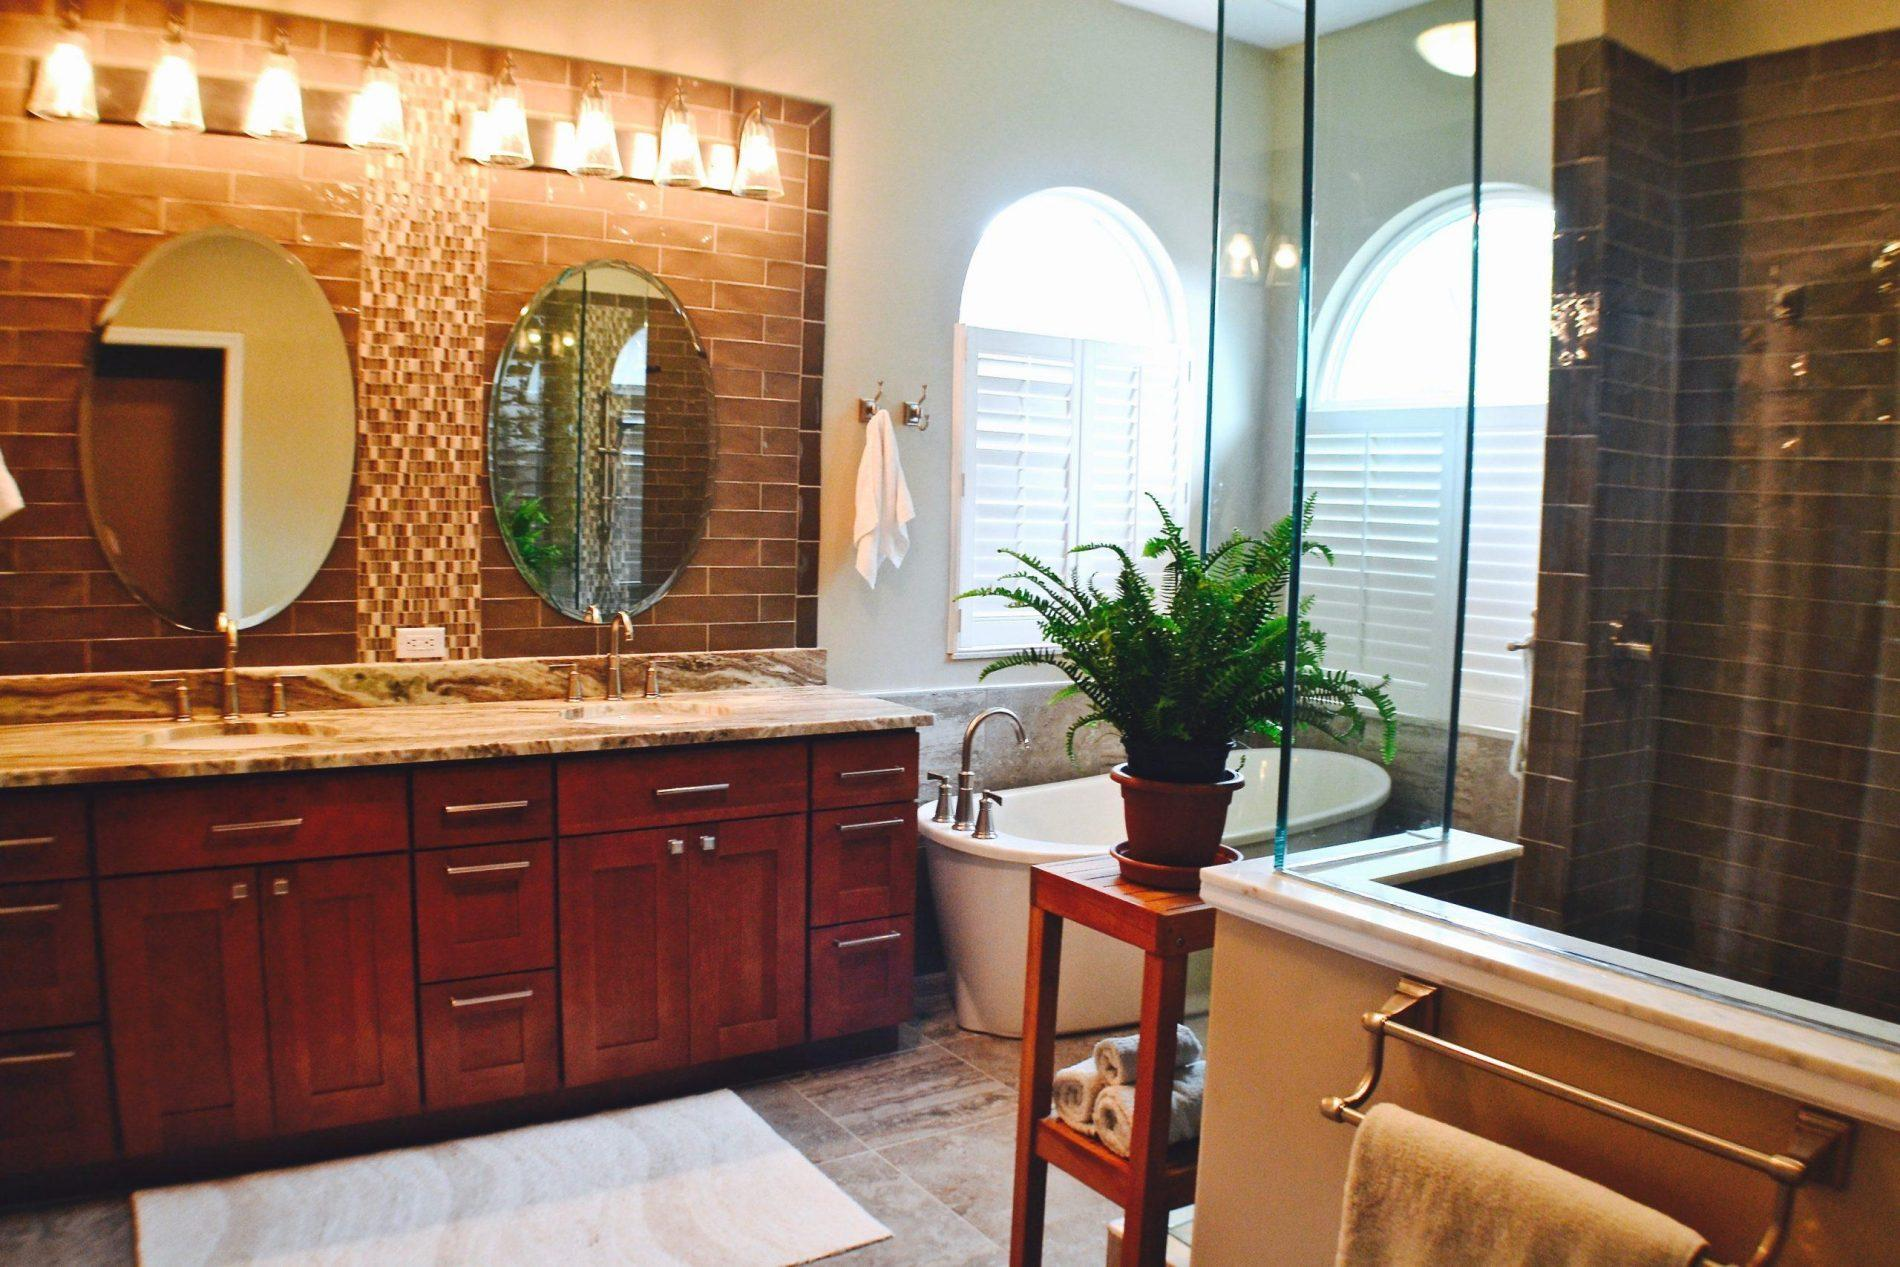 Home Remodel Service